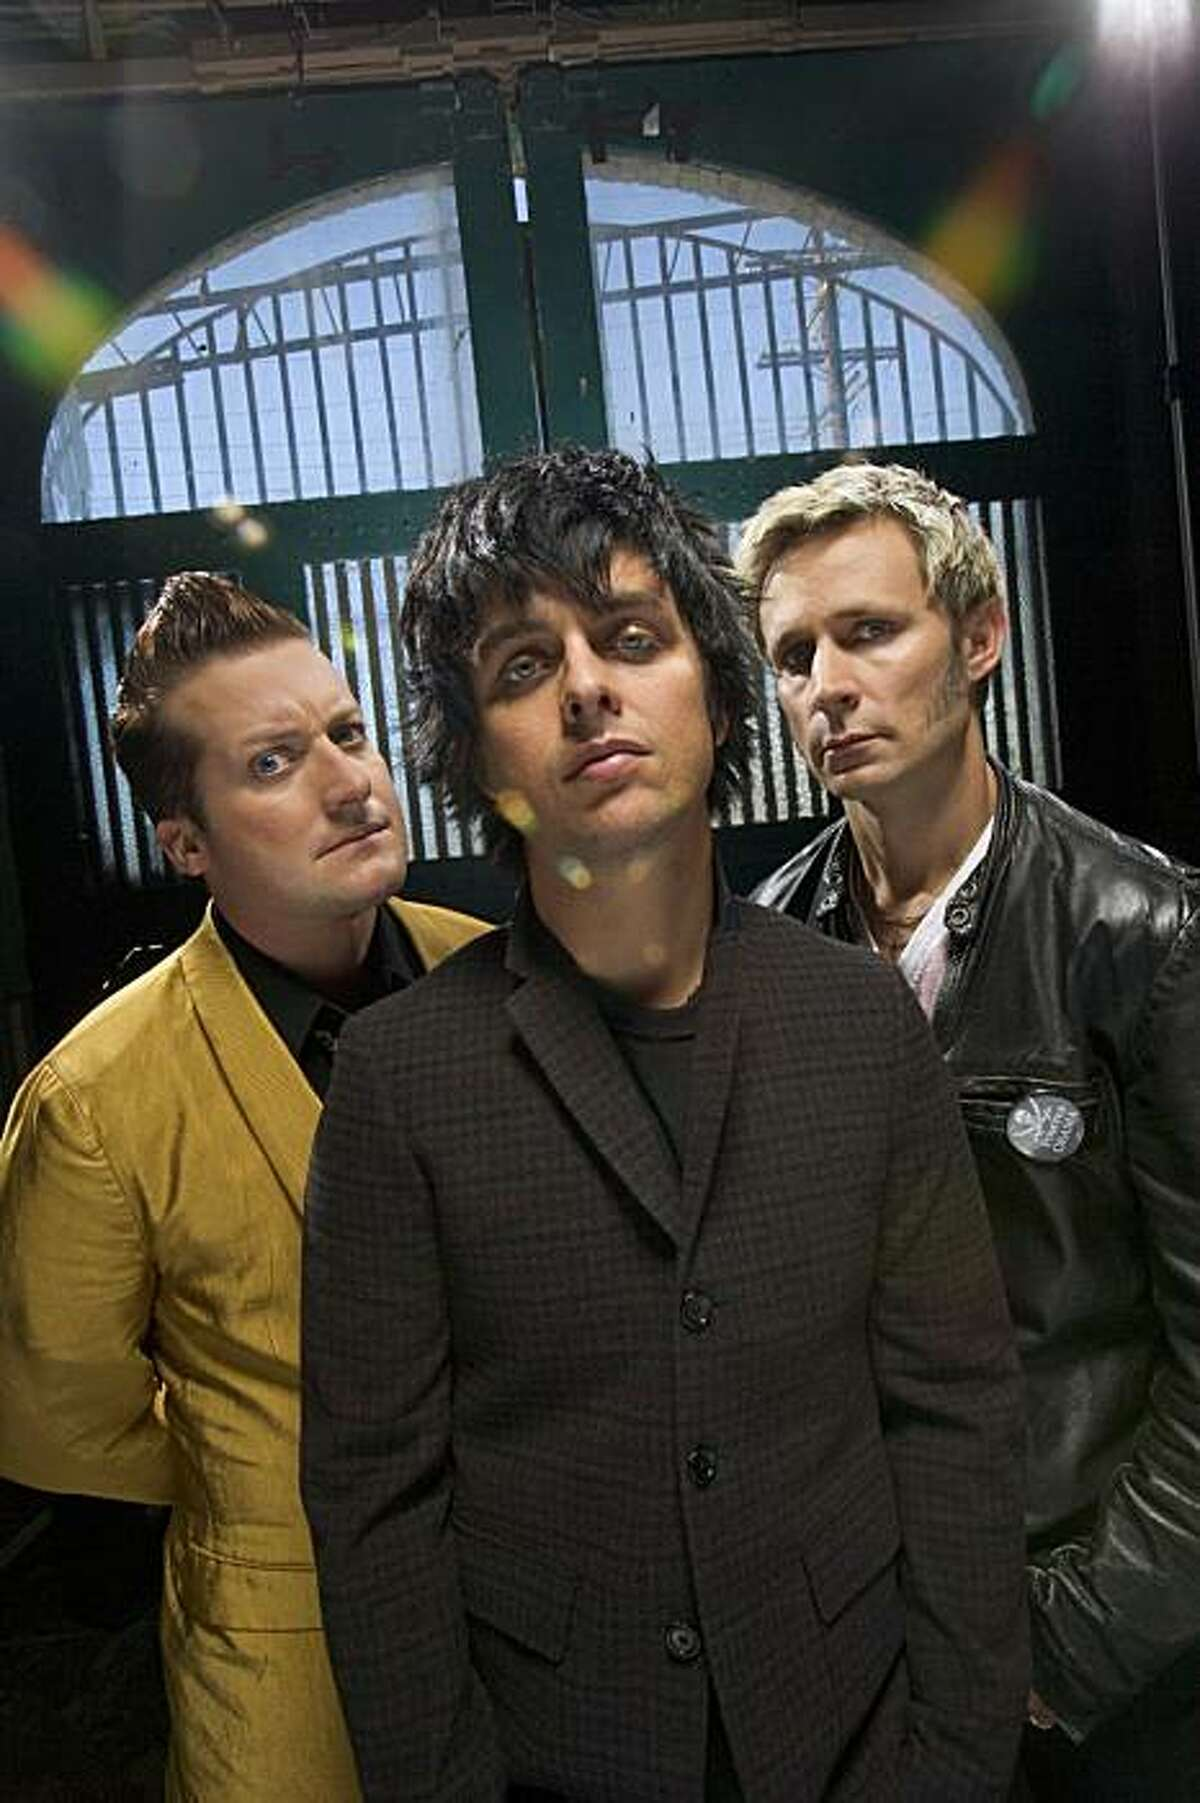 Green Day-the Grammy Award-winning band comprised of (l to r) Tré Cool, Billie Joe Armstrong and Mike Dirnt-are collaborating with Berkeley Rep to bring their multiplatinum album American Idiot to the stage. Photographer: Phil Mucci